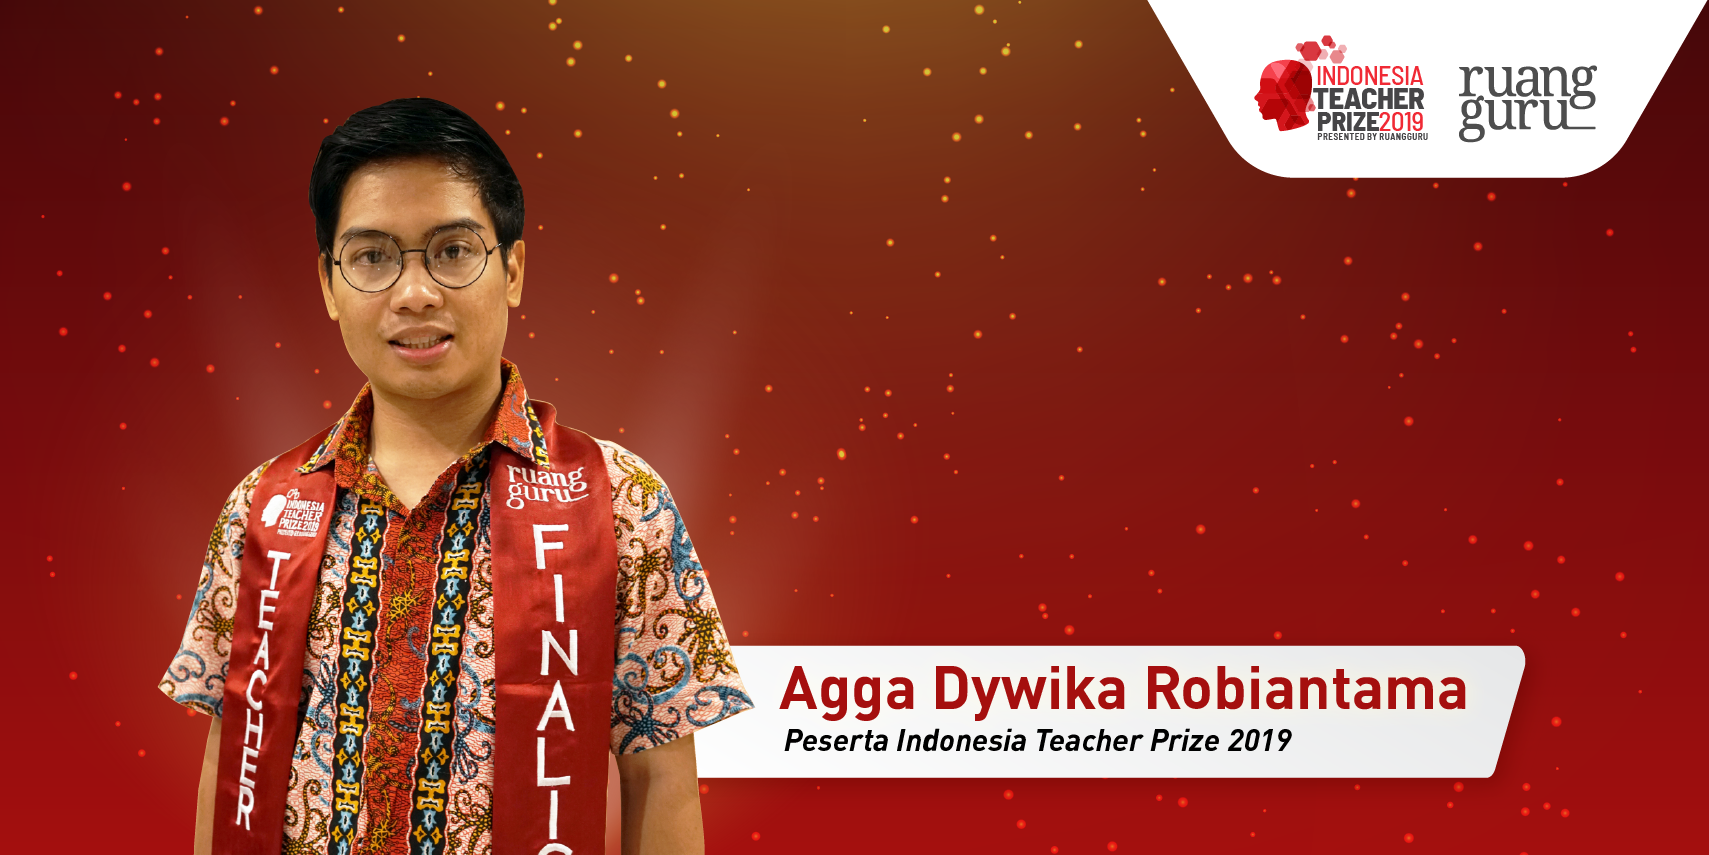 Indonesia Teacher Prize